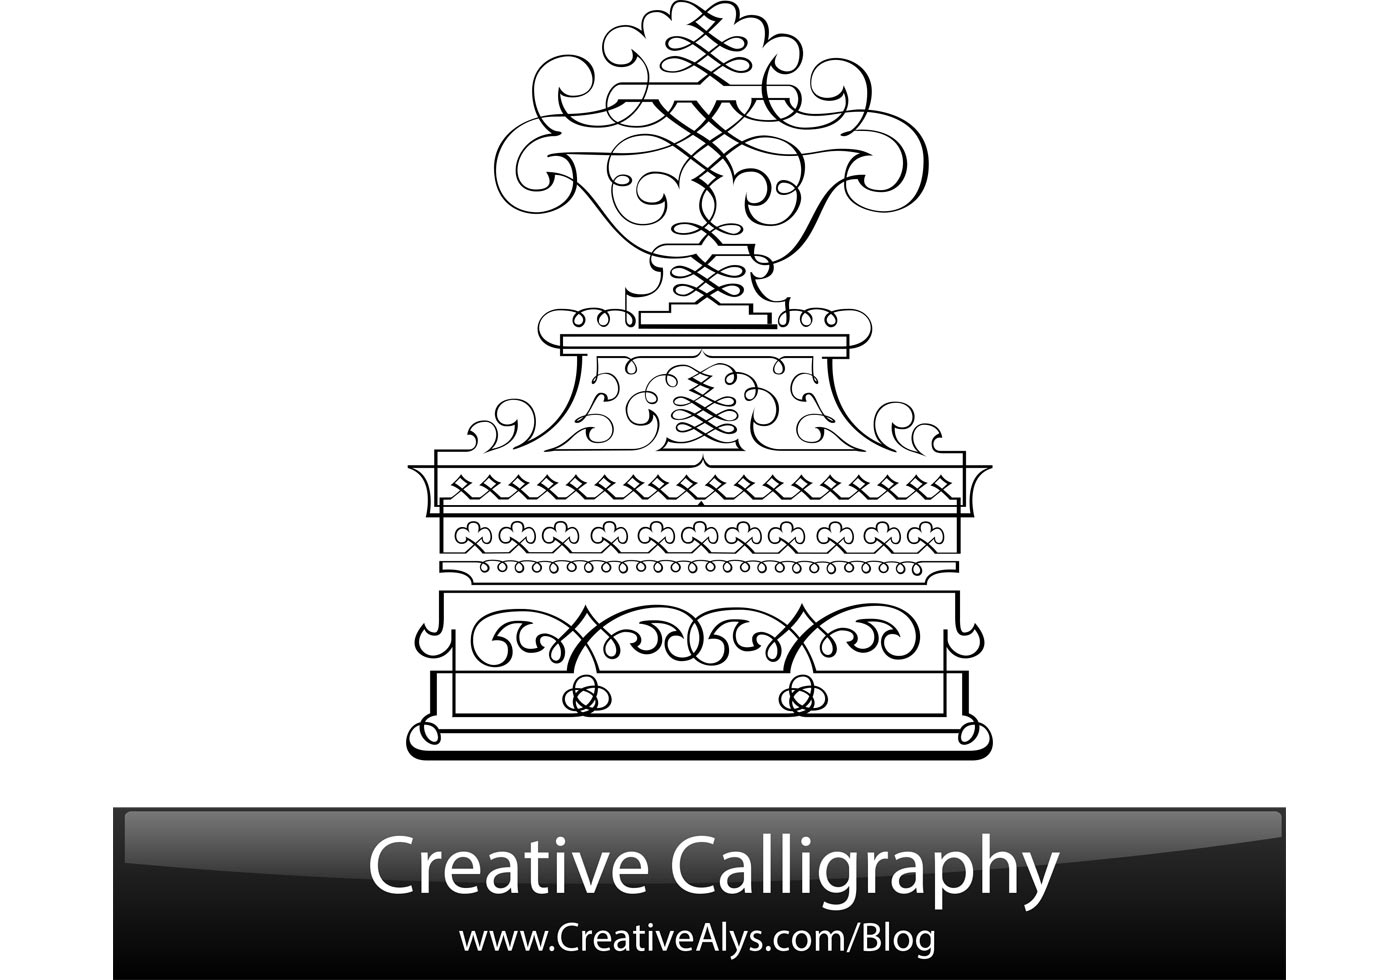 The Creative Calligraphy Sourcebook: Choose from 5